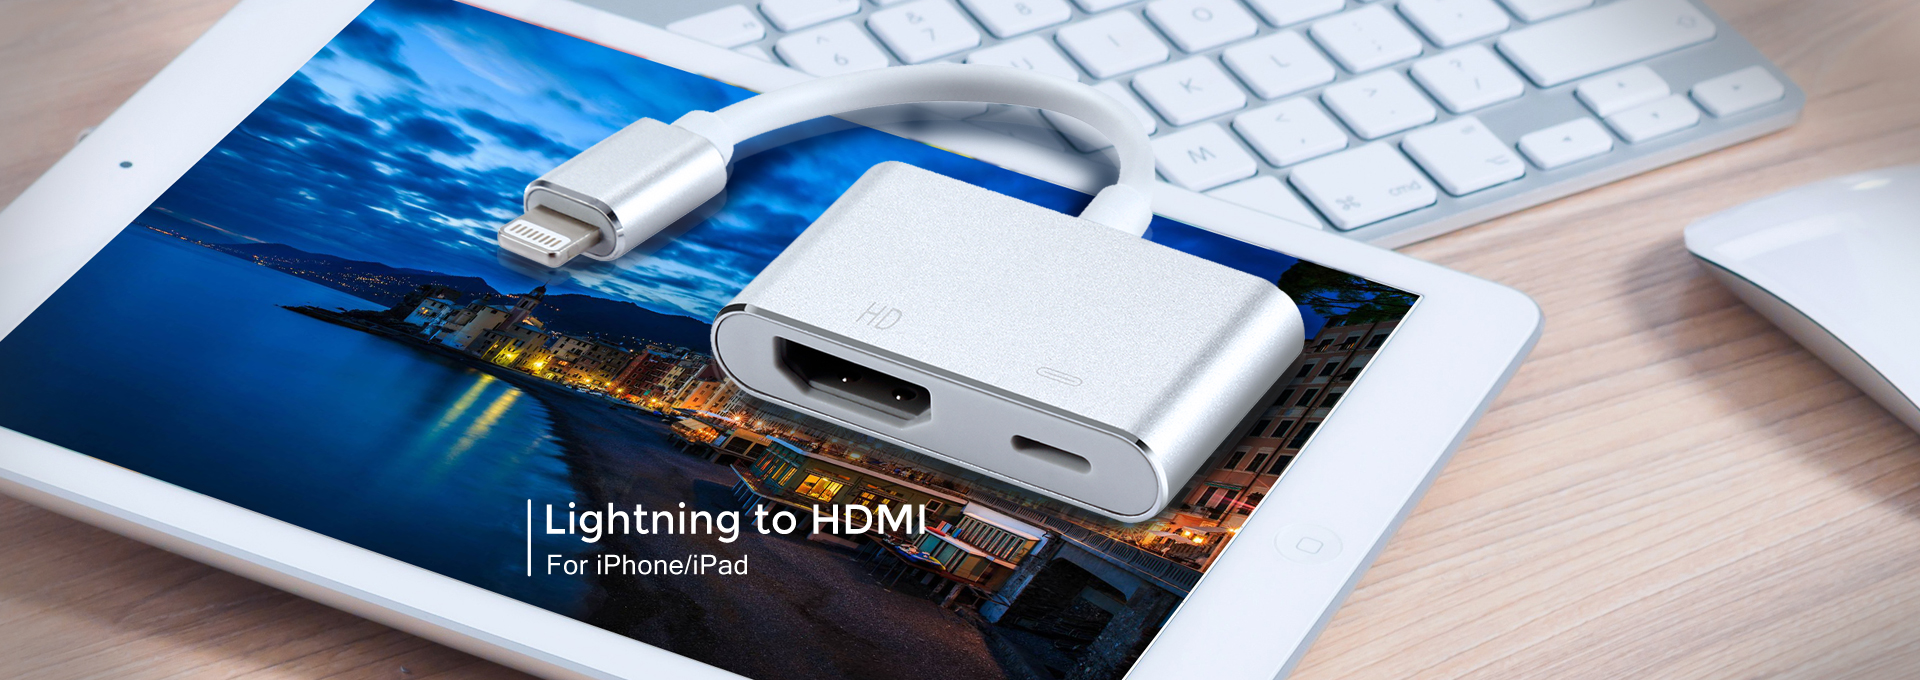 Lightning to HDMI